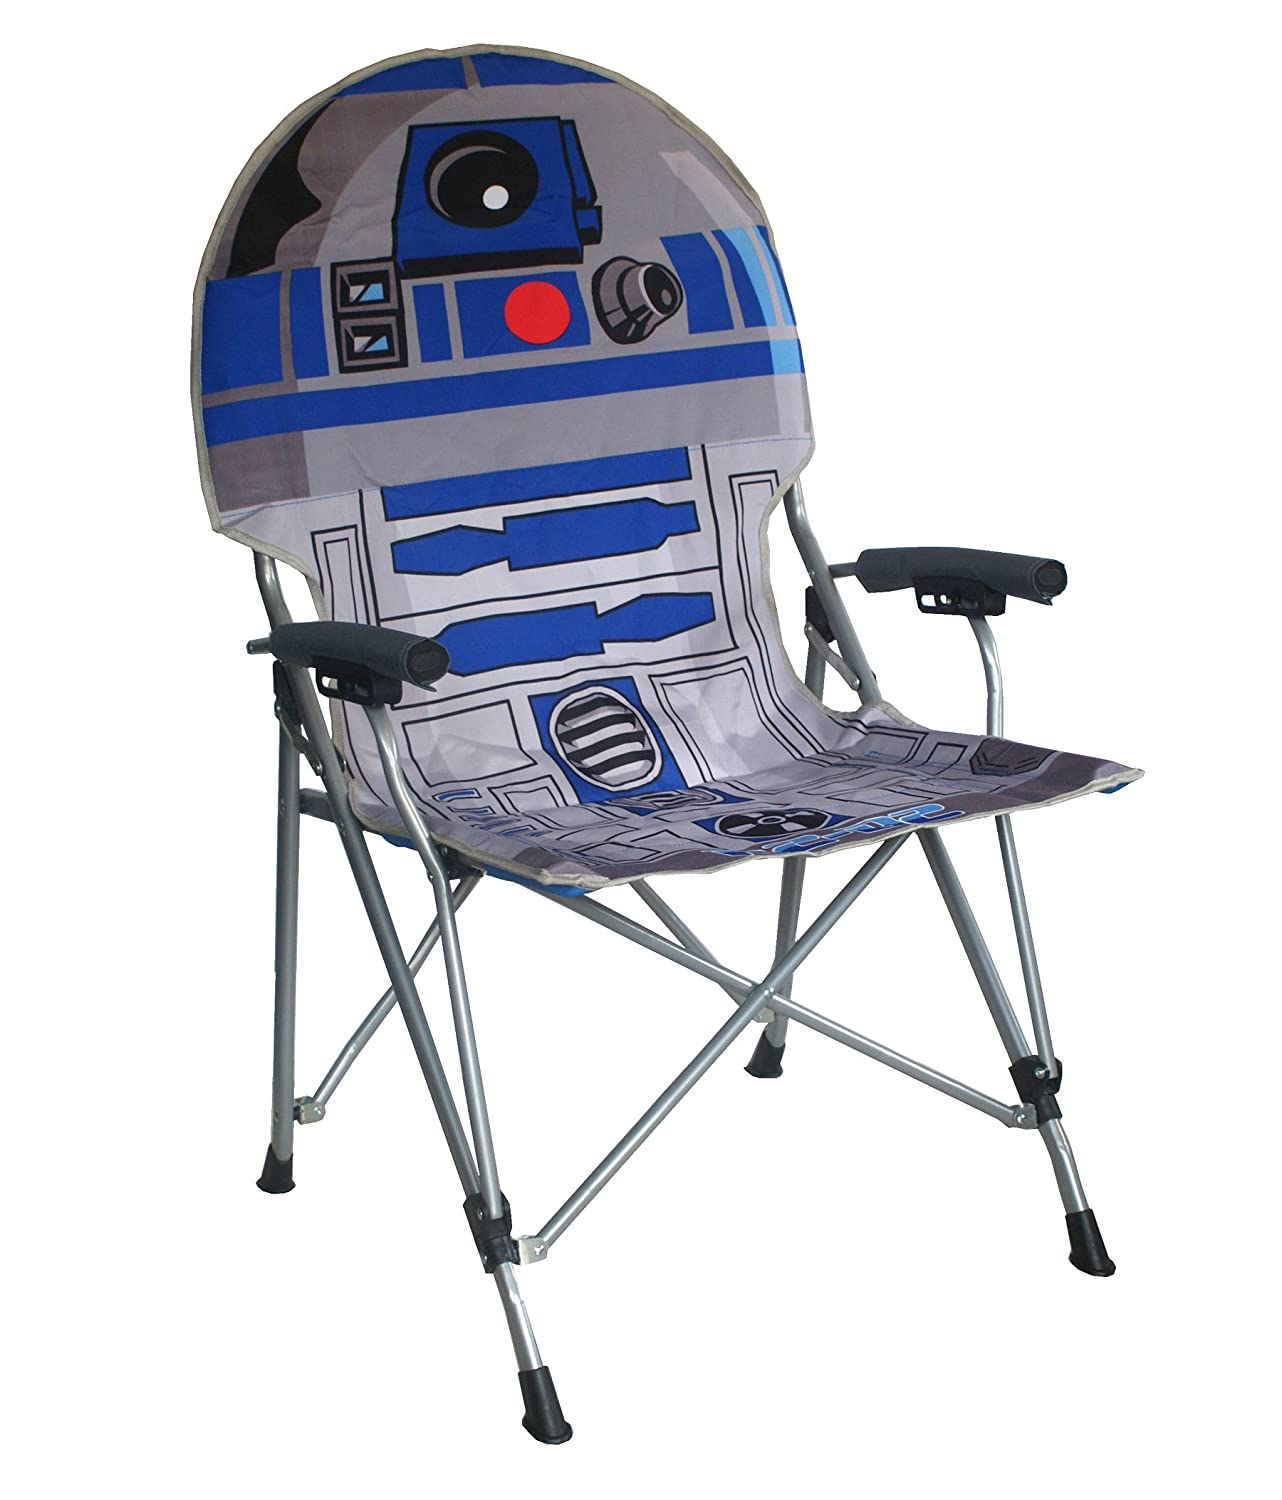 Amazon Star Wars R2D2 Full Size Folding Hard Armrest Chair